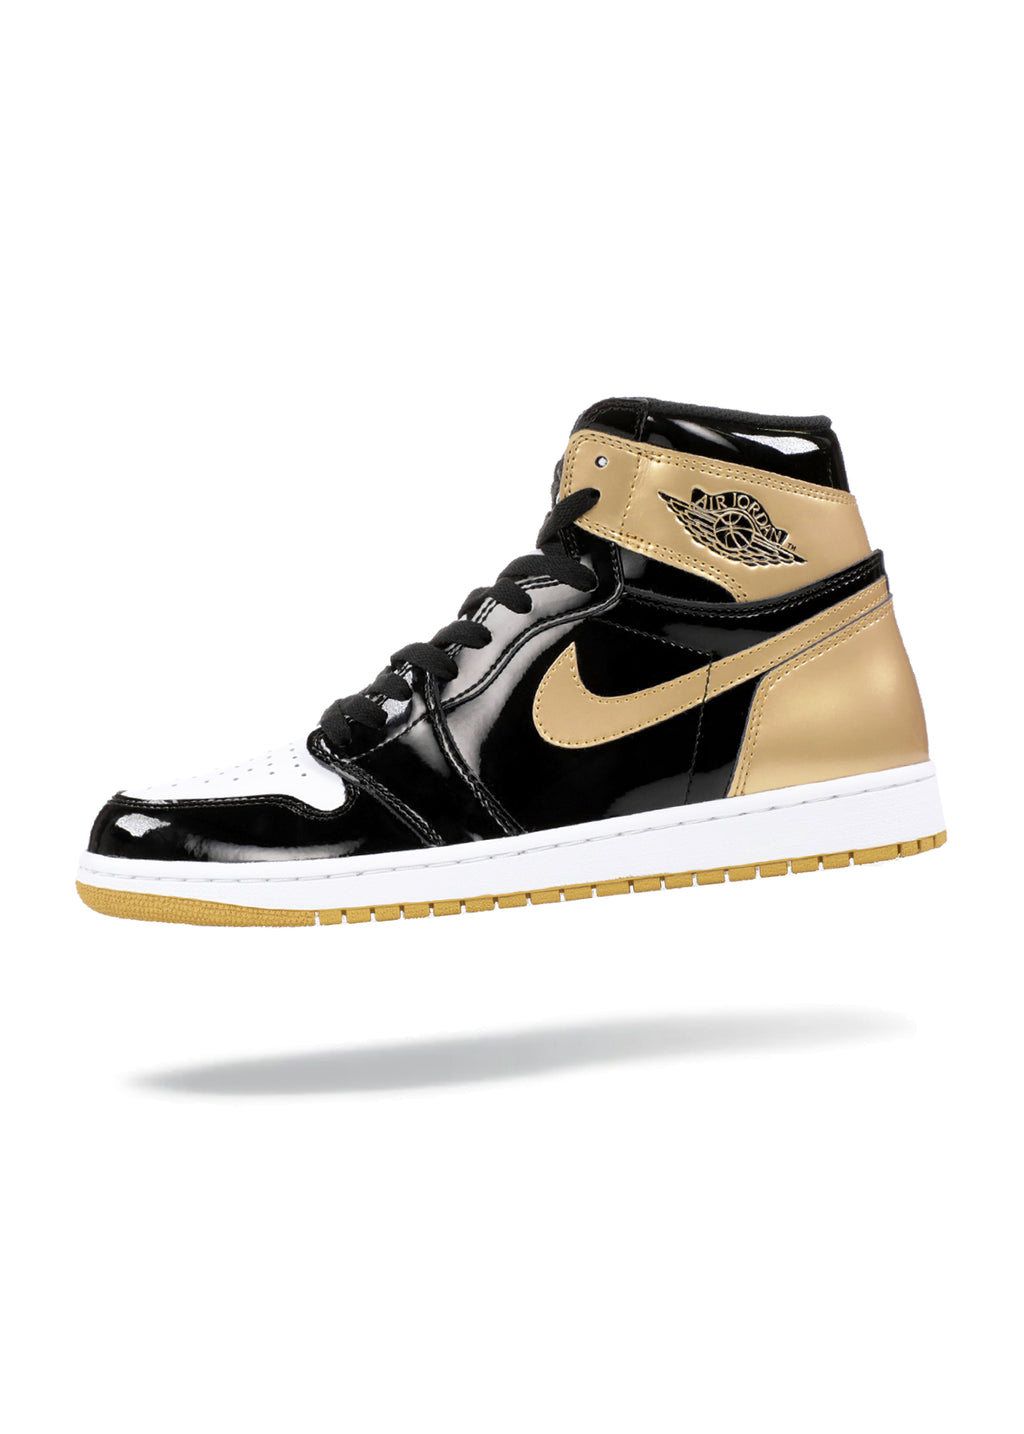 Jordan 1 Retro High Gold Top 3